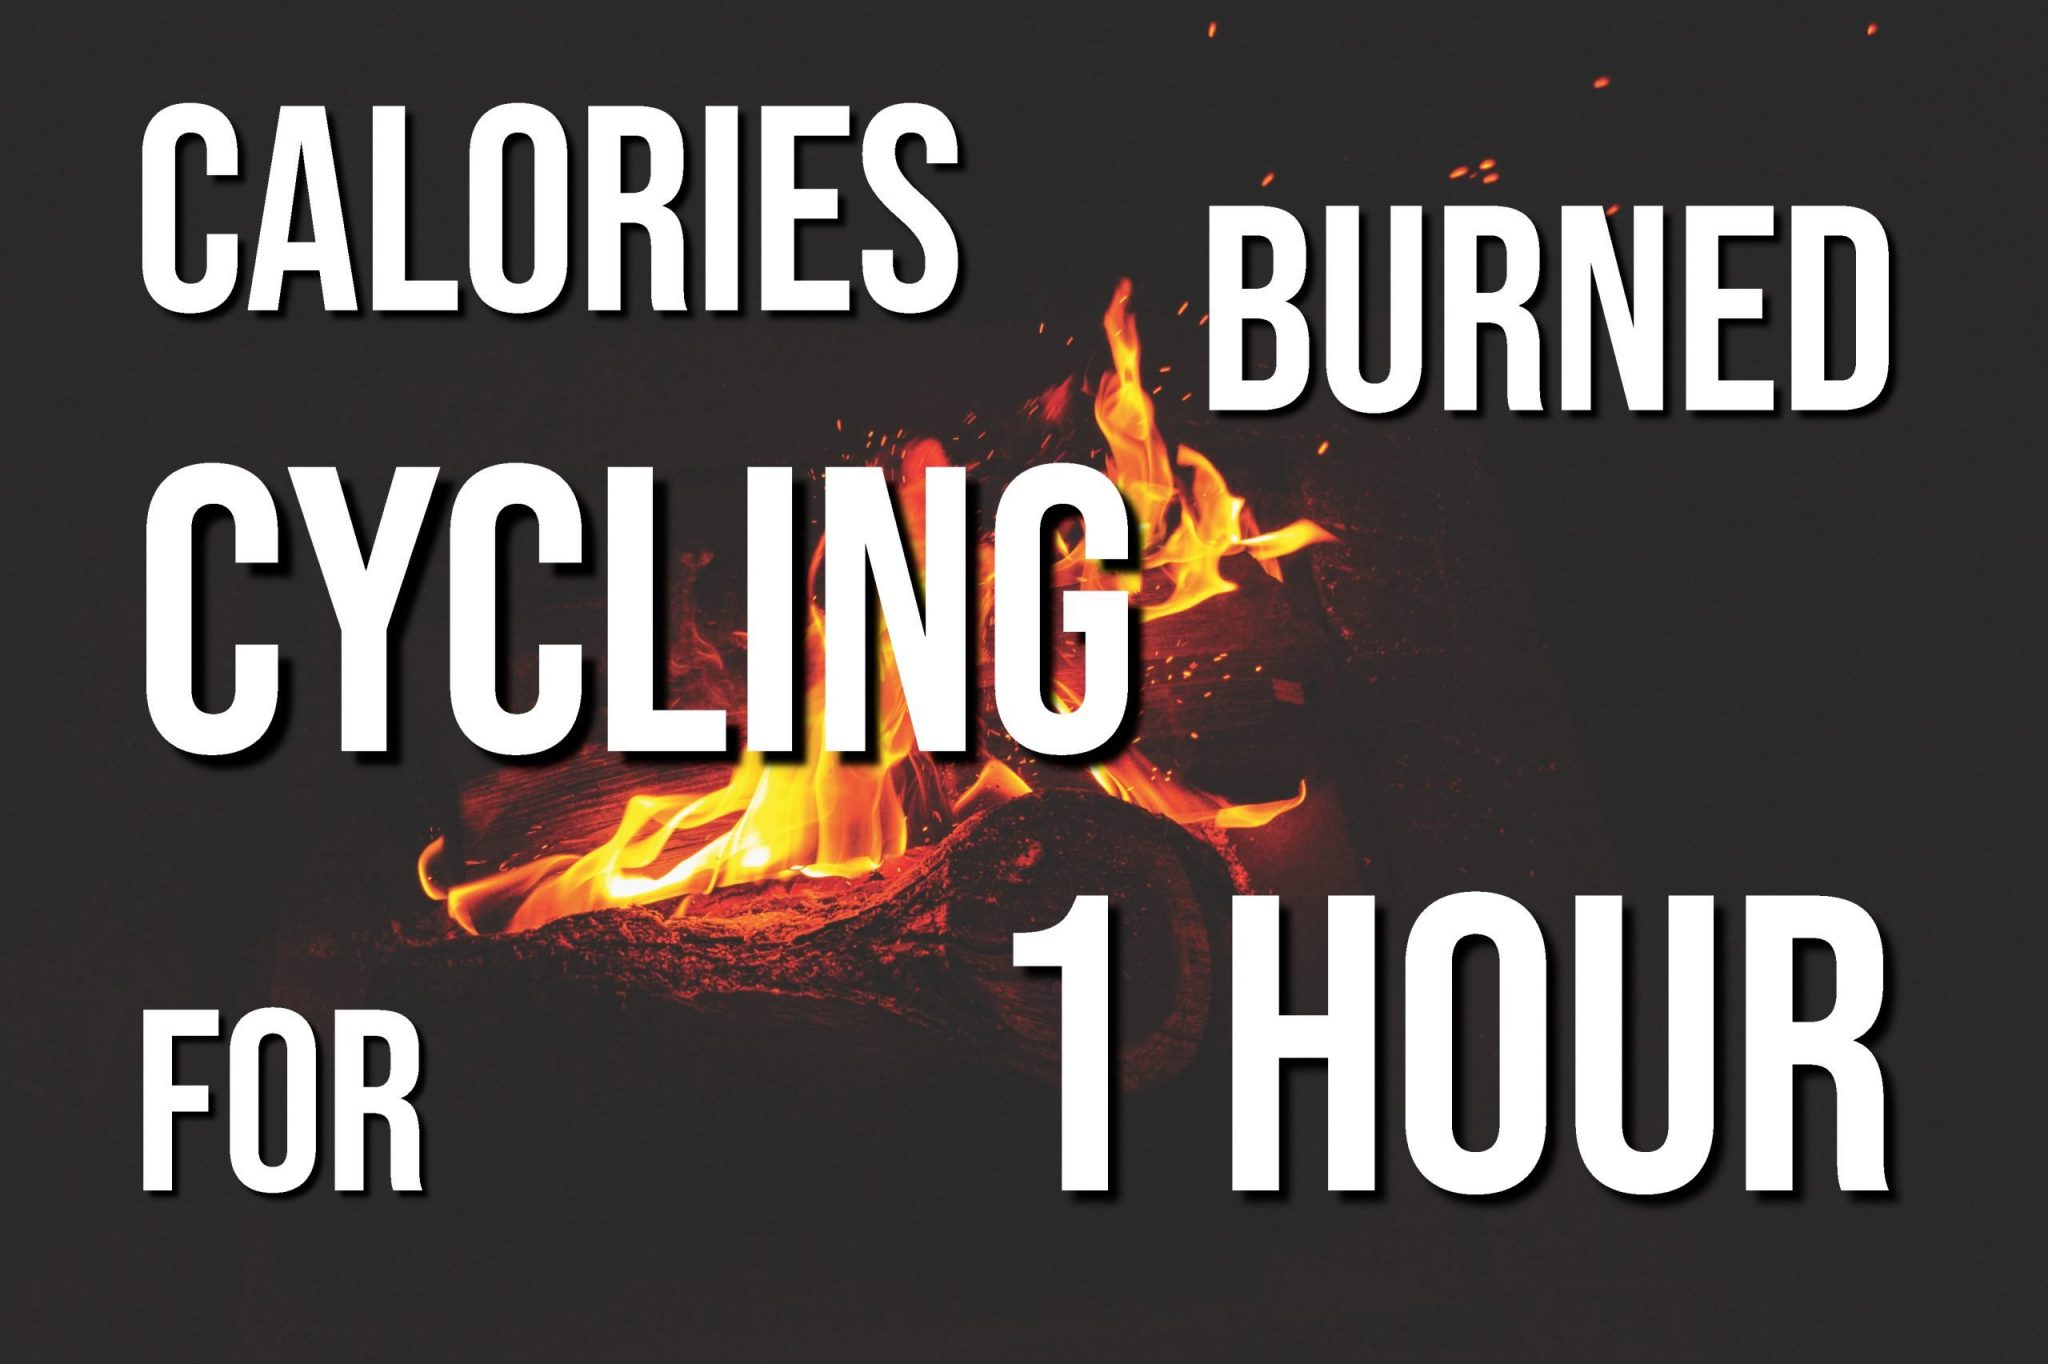 Calories Burned Cycling For 1 Hour